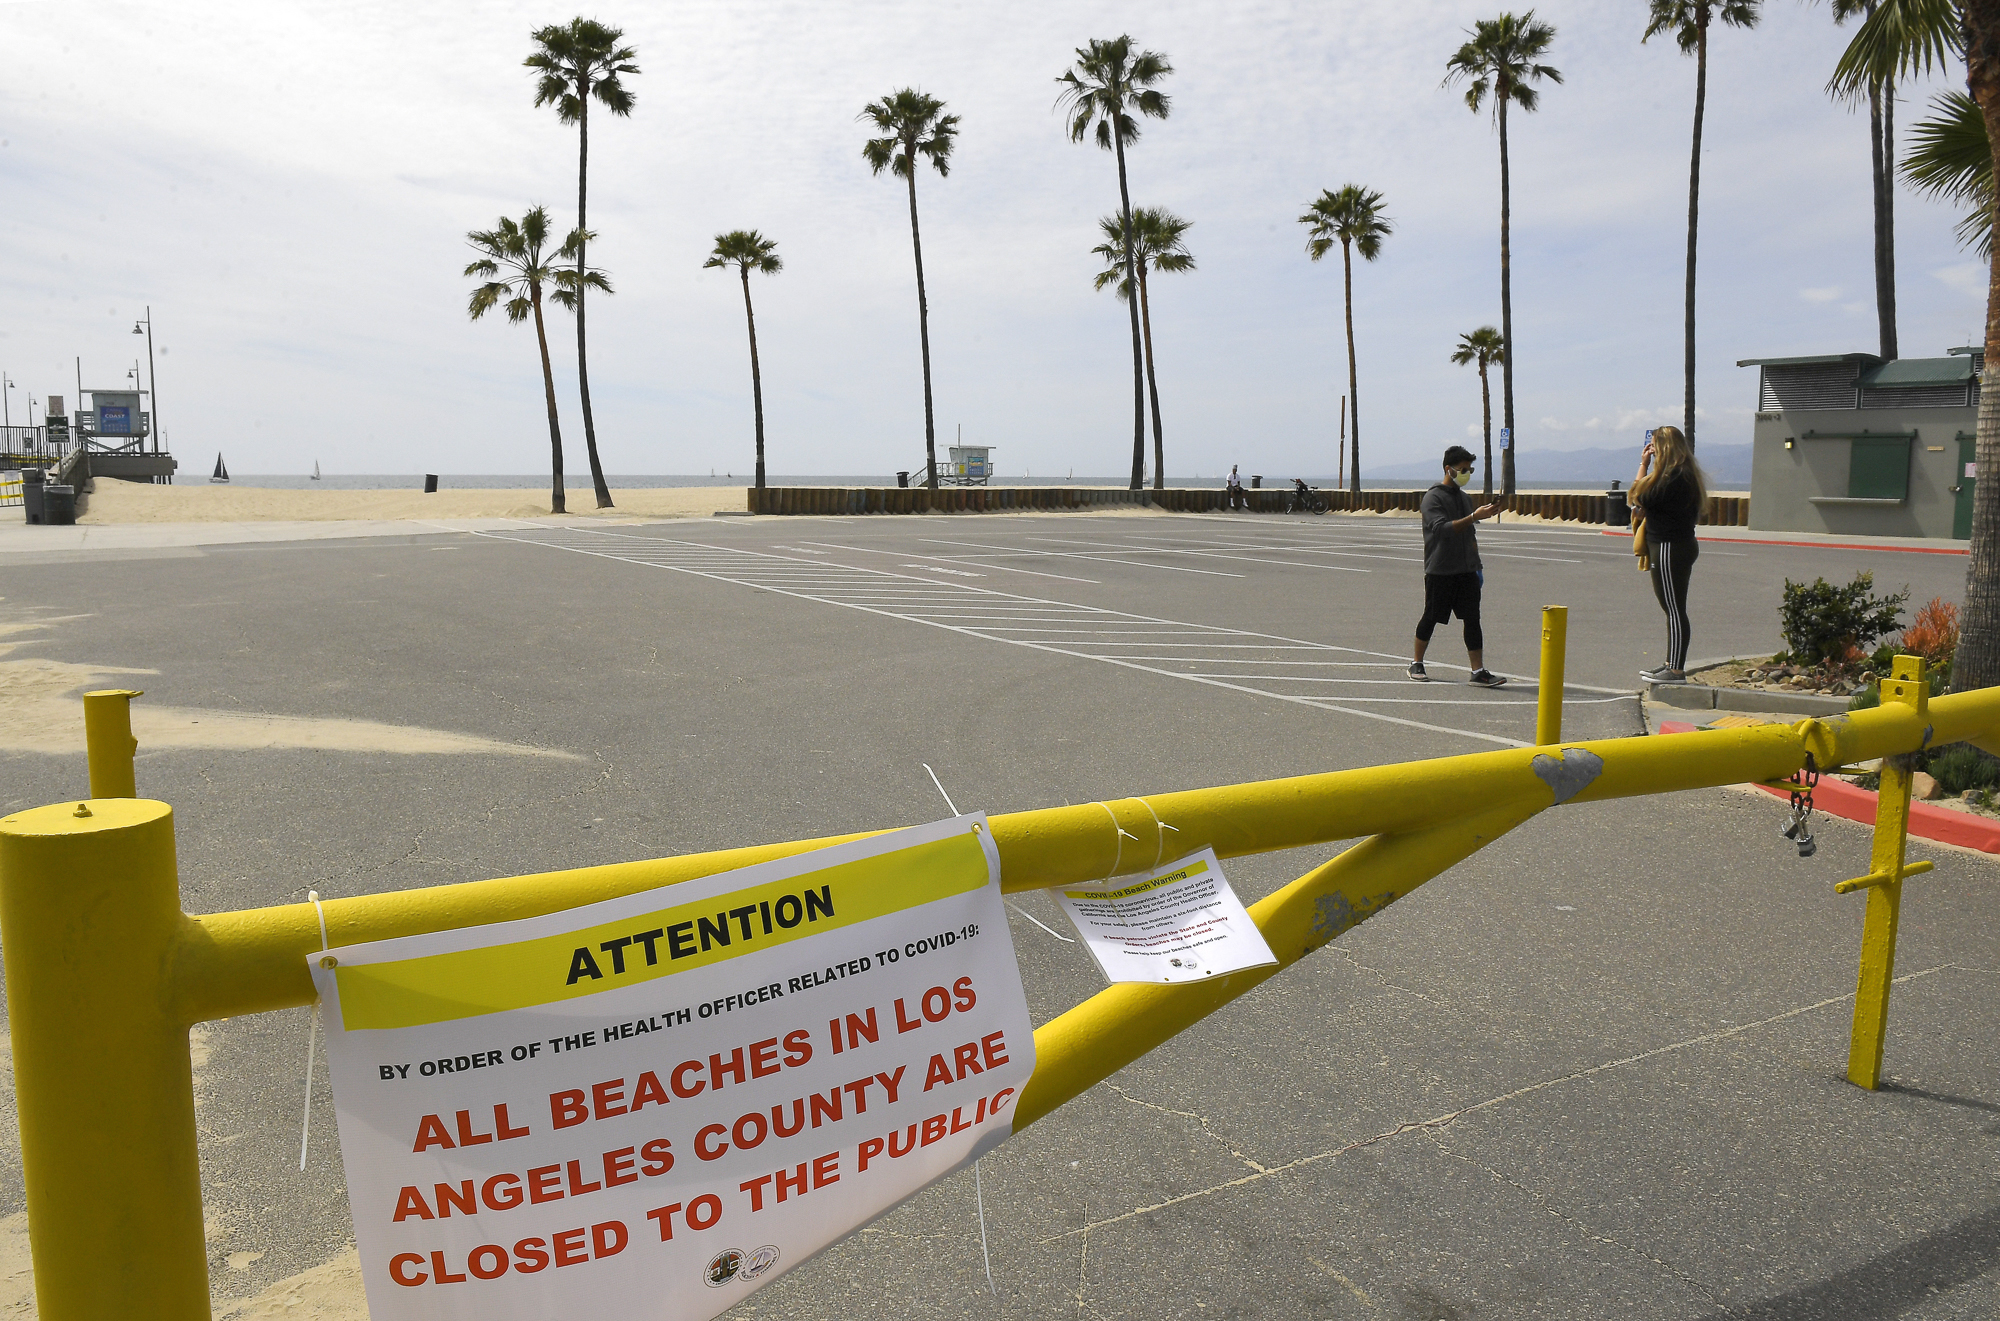 """Pedestrians walk through an empty parking lot at Venice Beach on March 28 — a week after Gov. Gavin Newsom barred 40 million residents from going outdoors except for essentials. Some evidence suggests that may be helping California """"bend the curve"""" of rising coronavirus casualties. Photo by Mark J. Terrill, AP Photo"""